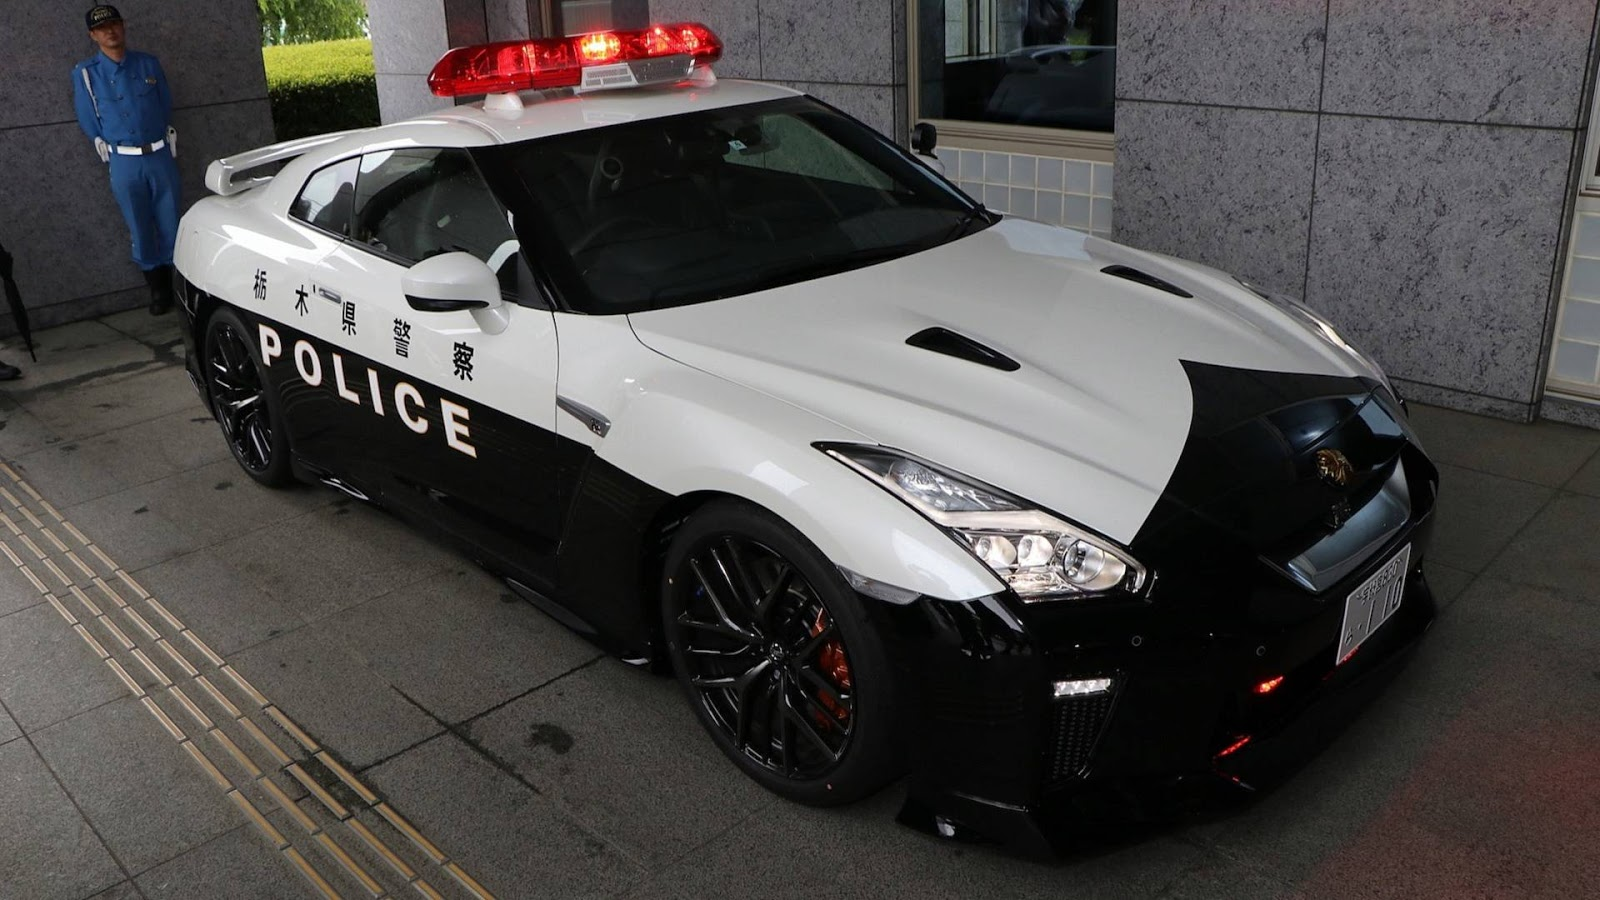 Cool Japanese Police Car Collection Ben9166